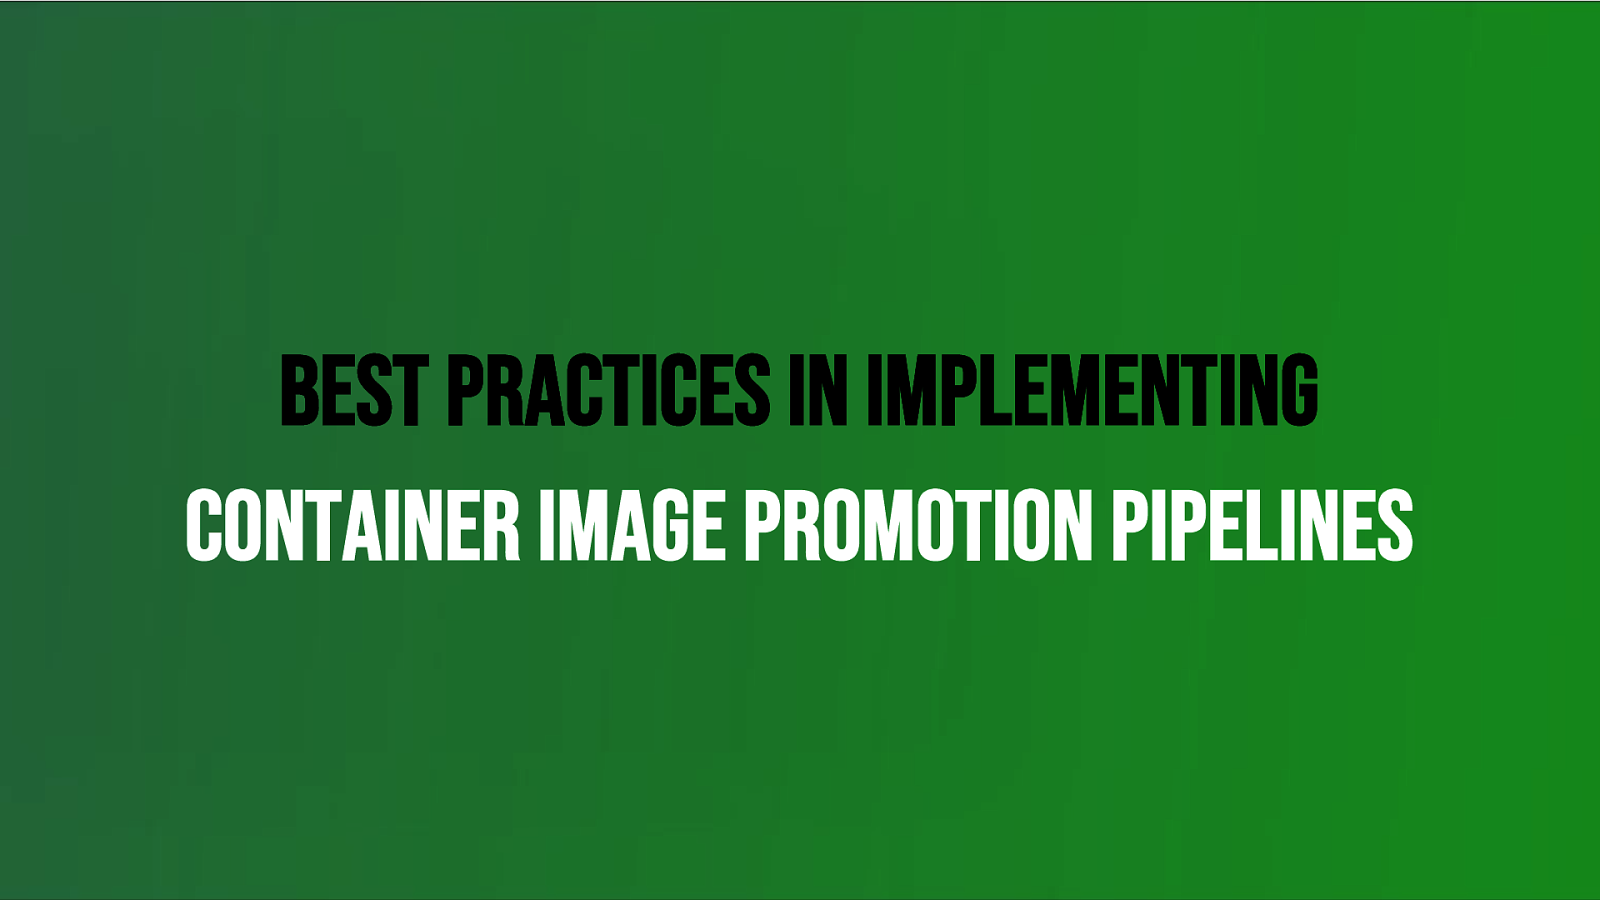 Best Practices In Implementing Container Image Promotion Pipelines